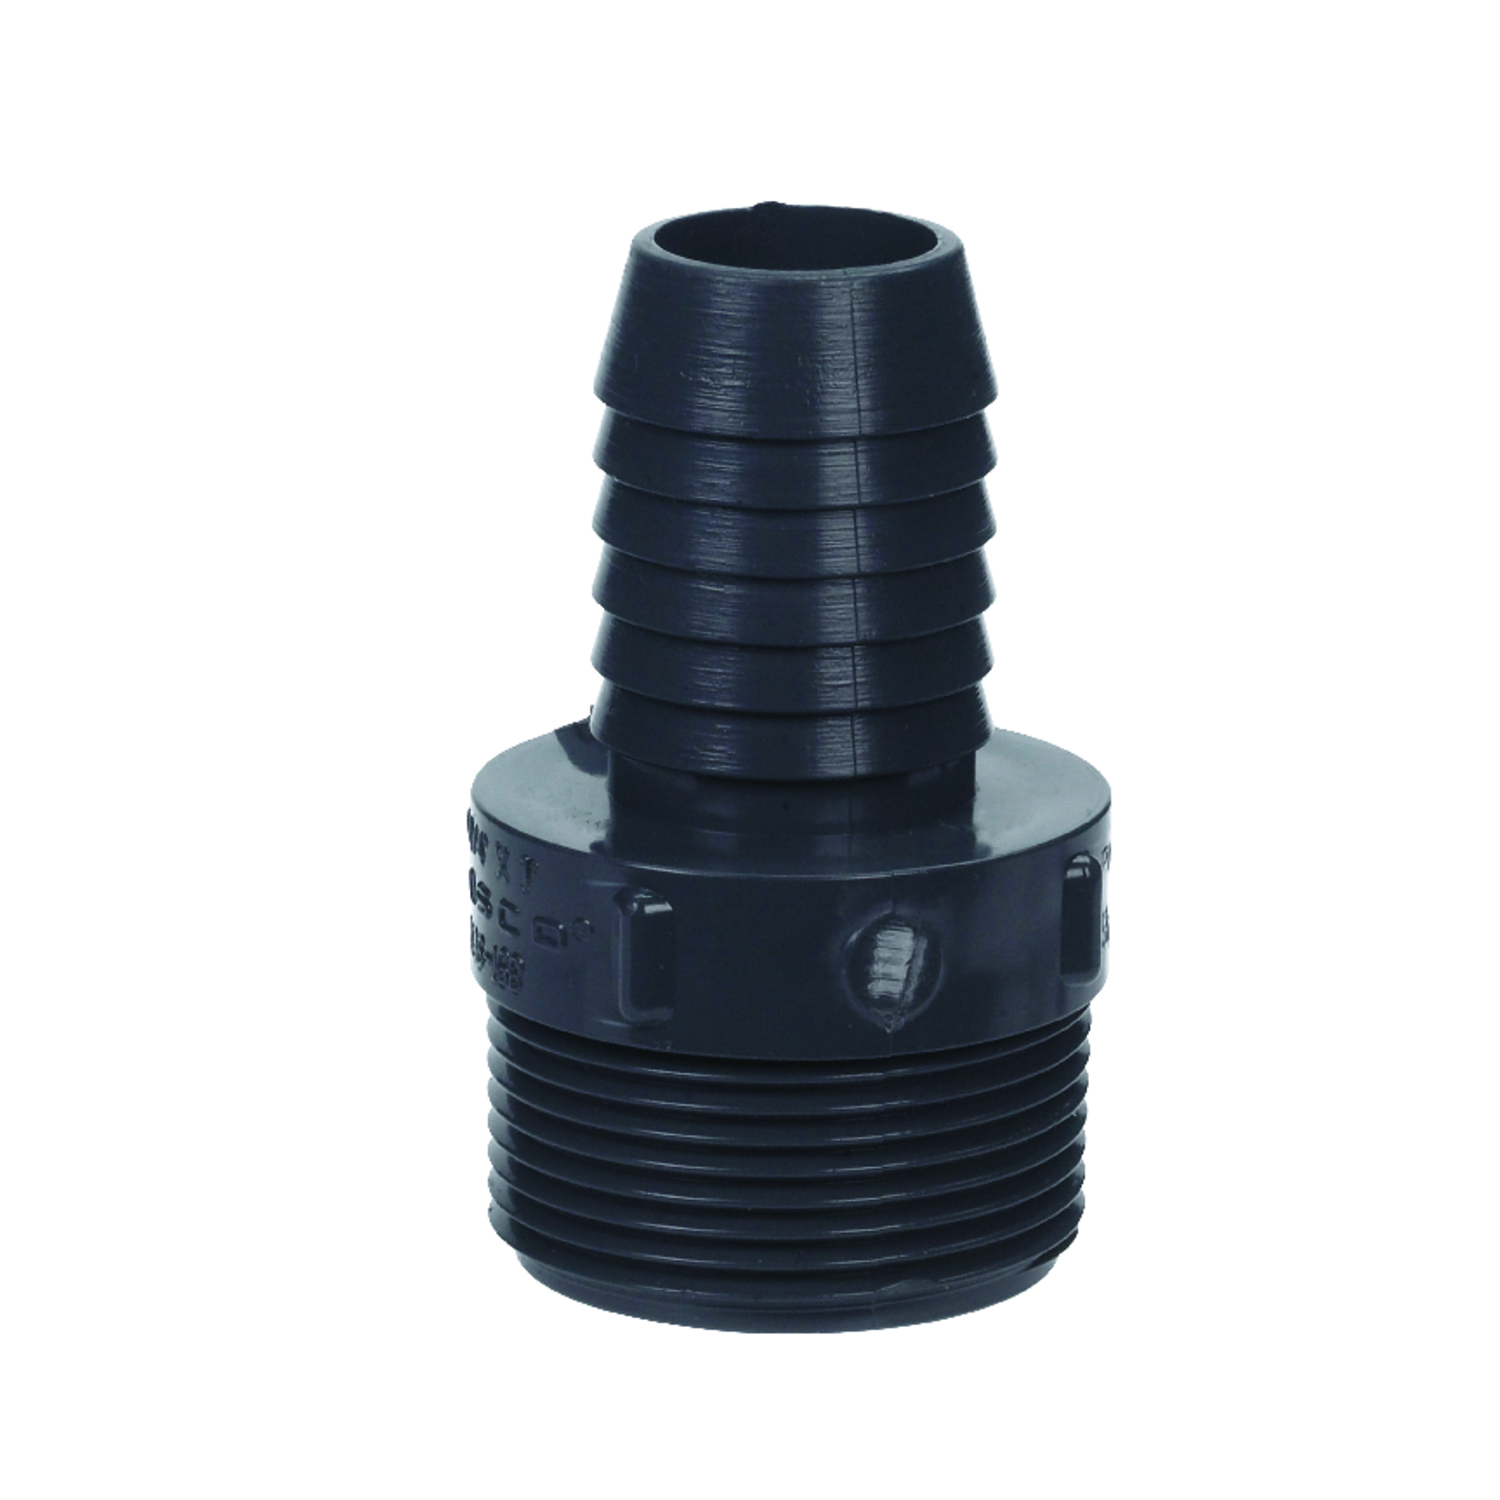 Lasco  1 in. Insert   x 1-1/4 in. Dia. MPT  Insert Adapter